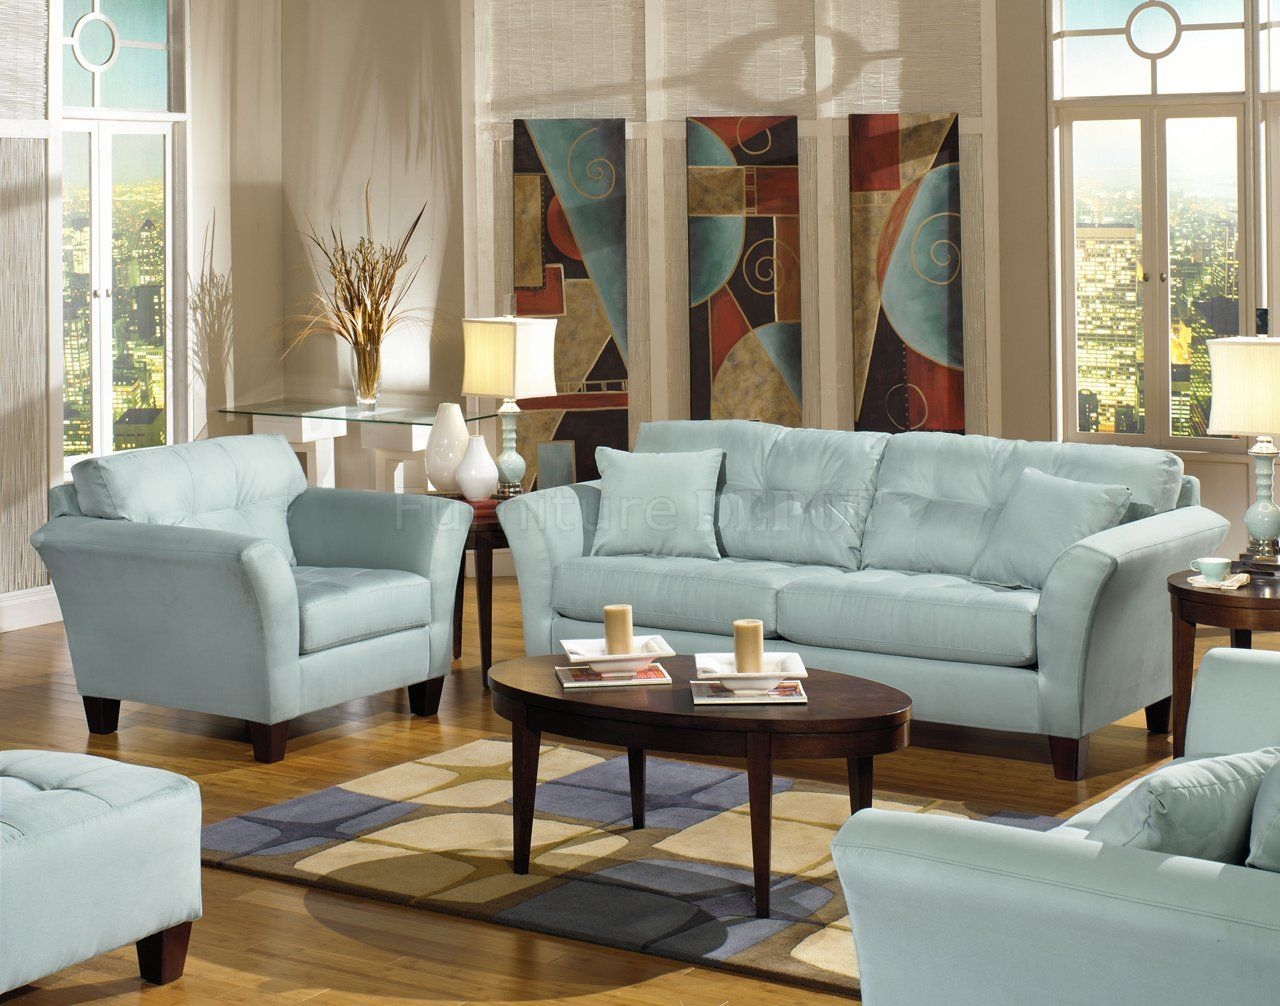 Light Blue Fabric Modern Sofa Loveseat Set wWood Legs For the